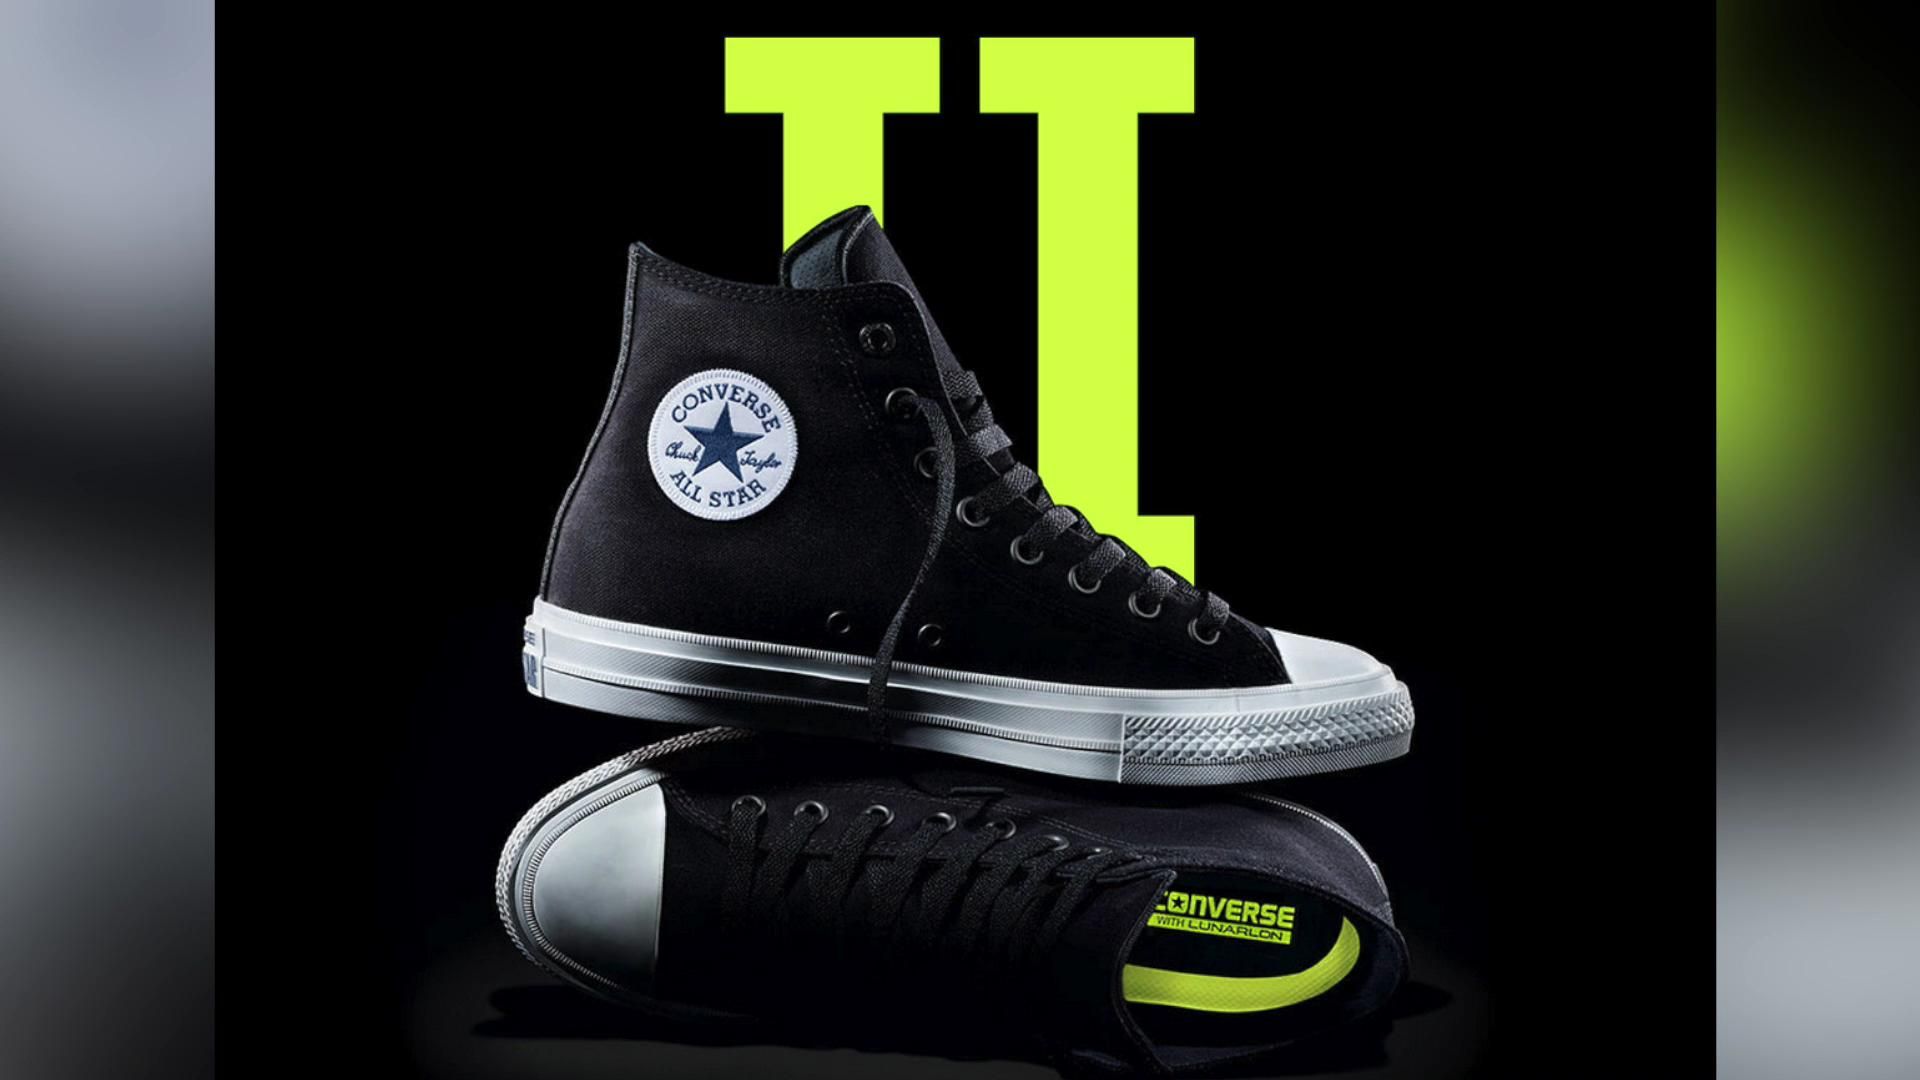 ce1288dfb356 Converse unveils the first Chuck Taylor redesign in 98 years